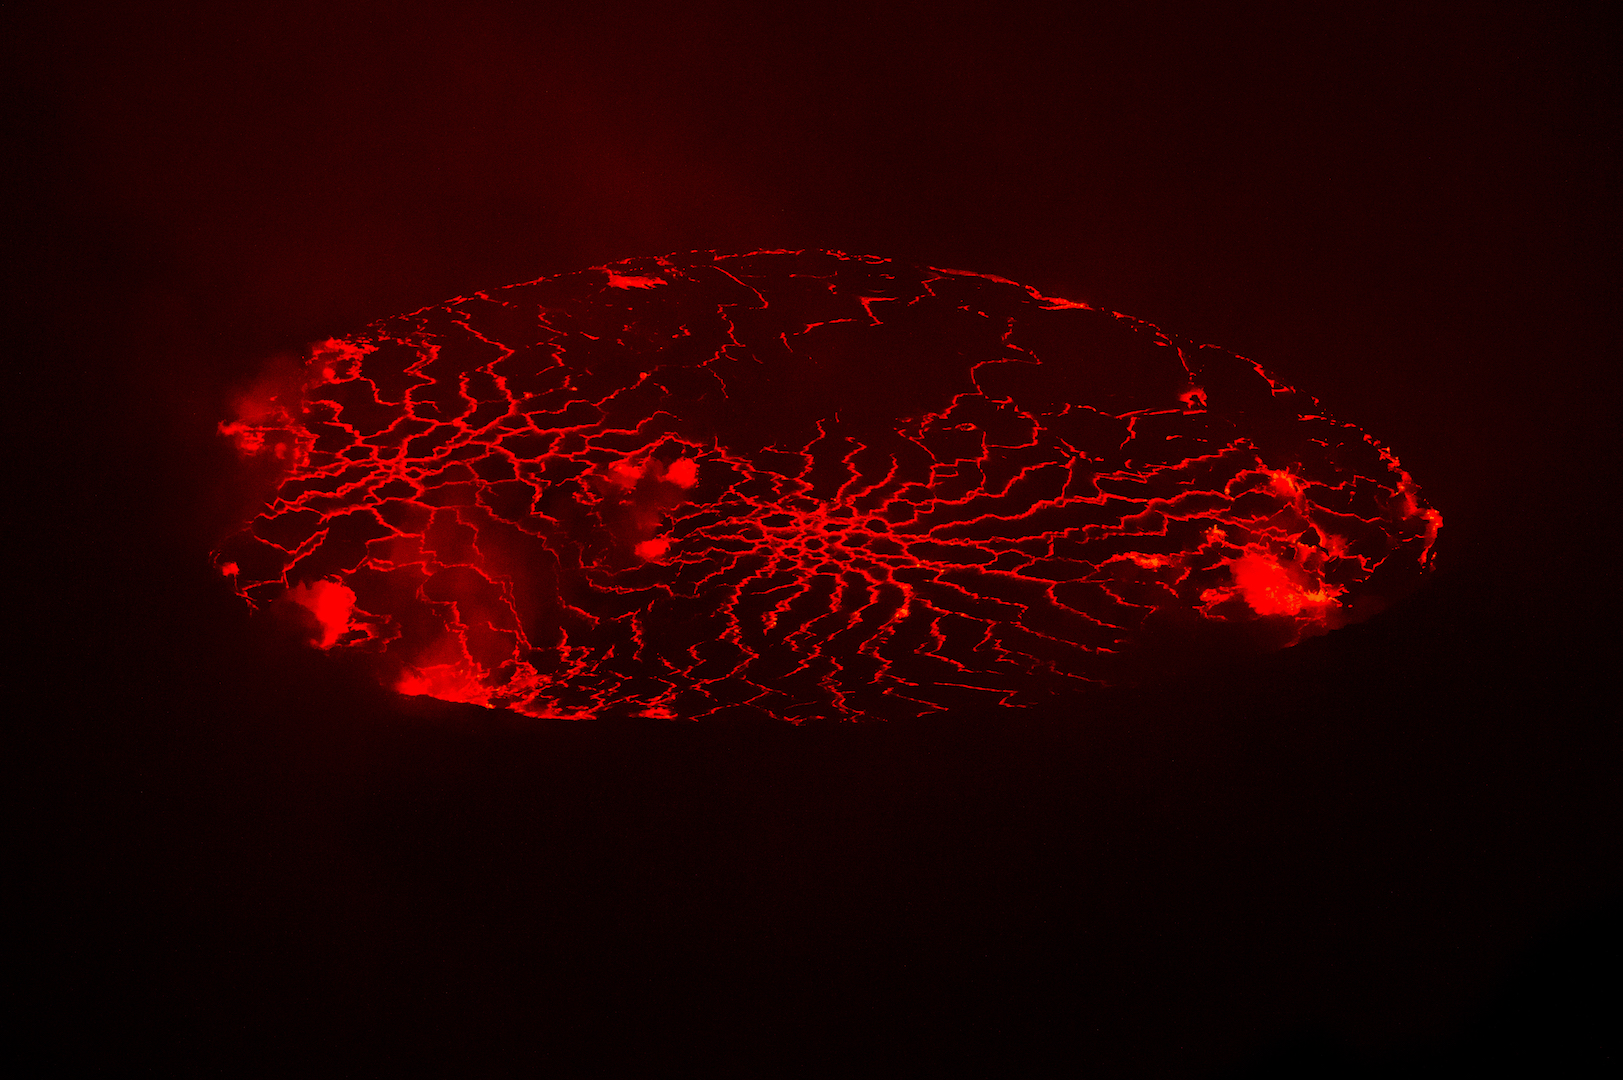 As night falls, Nyiragongo reveals its true colours. I set up my photographic equipment for an all-night vigil of the volcano. The best way to see it is in the dark, when the glowing red molten lava, and the cracks and fissures stand out.